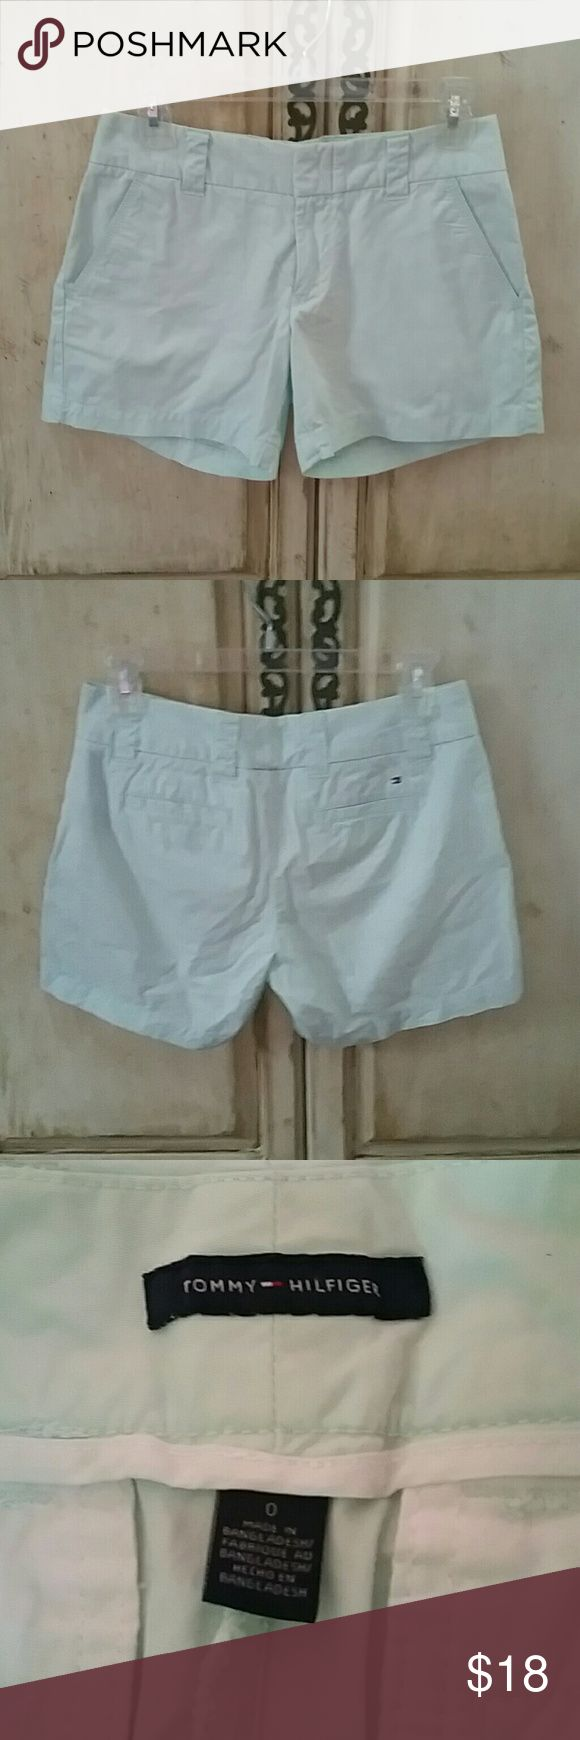 Tommy Hilfiger Mint shorts In very good condition mint shorts Tommy Hilfiger Shorts